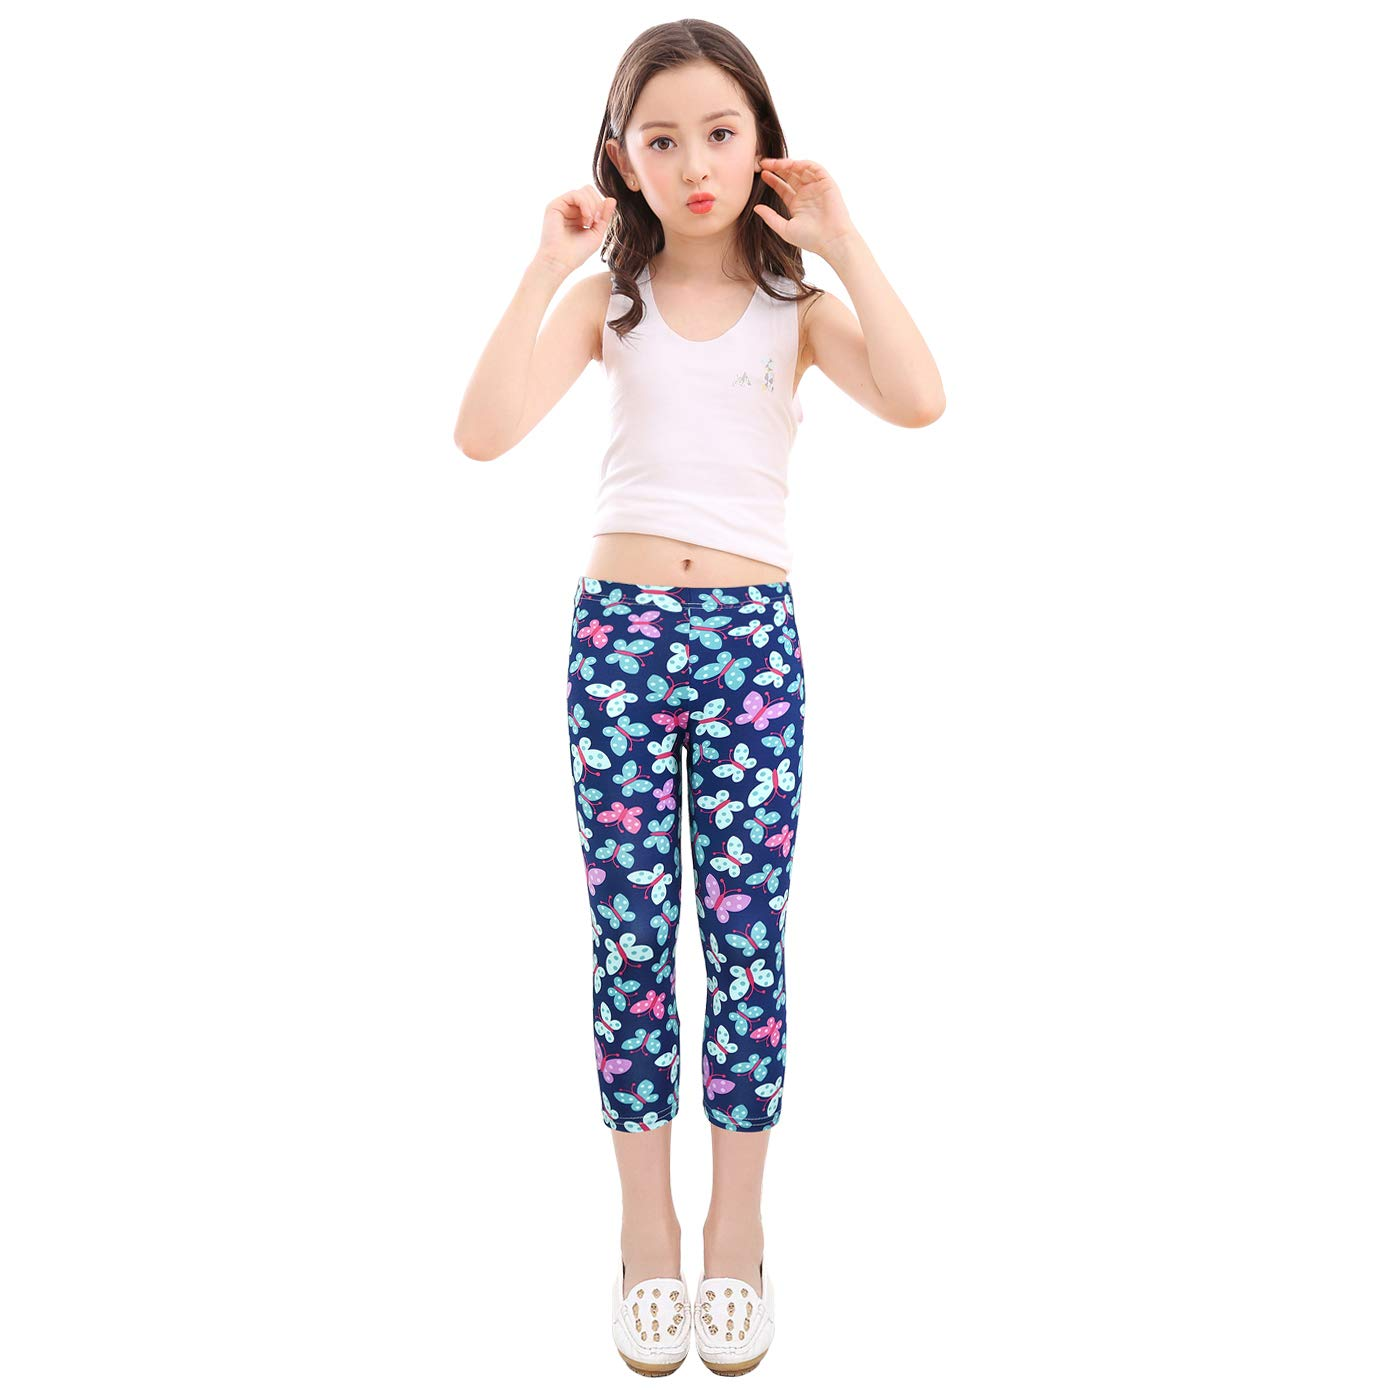 slaixiu 3-Pack Printing Flower Girl Leggings Kids Classic Pants 4-13Y(No.70_SADF_#130)